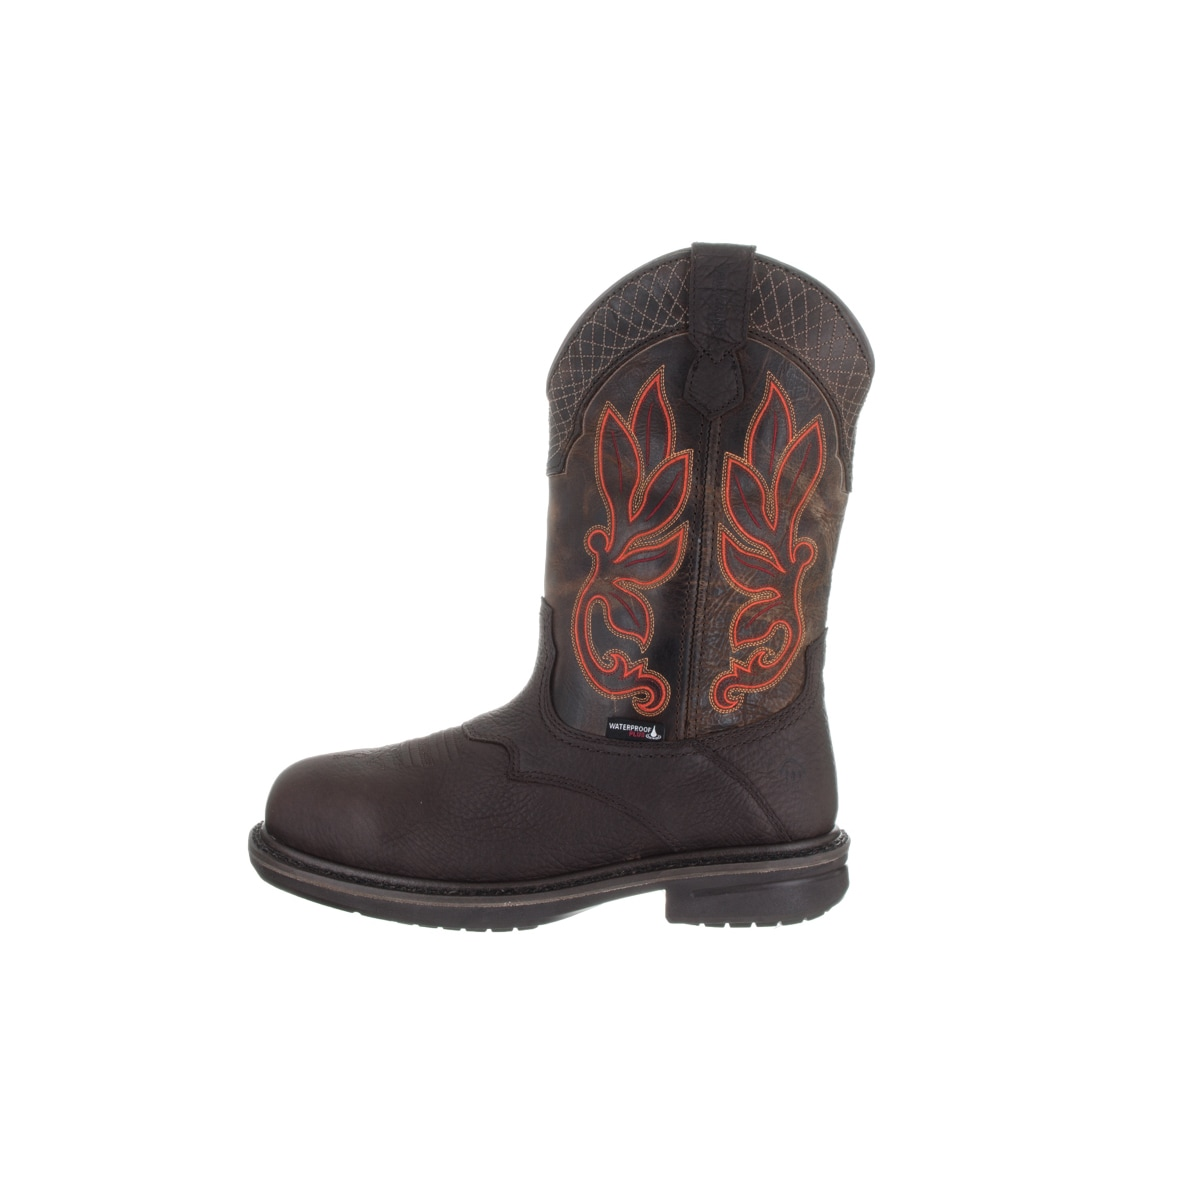 4c8f21e1a87 Wolverine Men's Roscoe Brown Leather Waterproof Boots